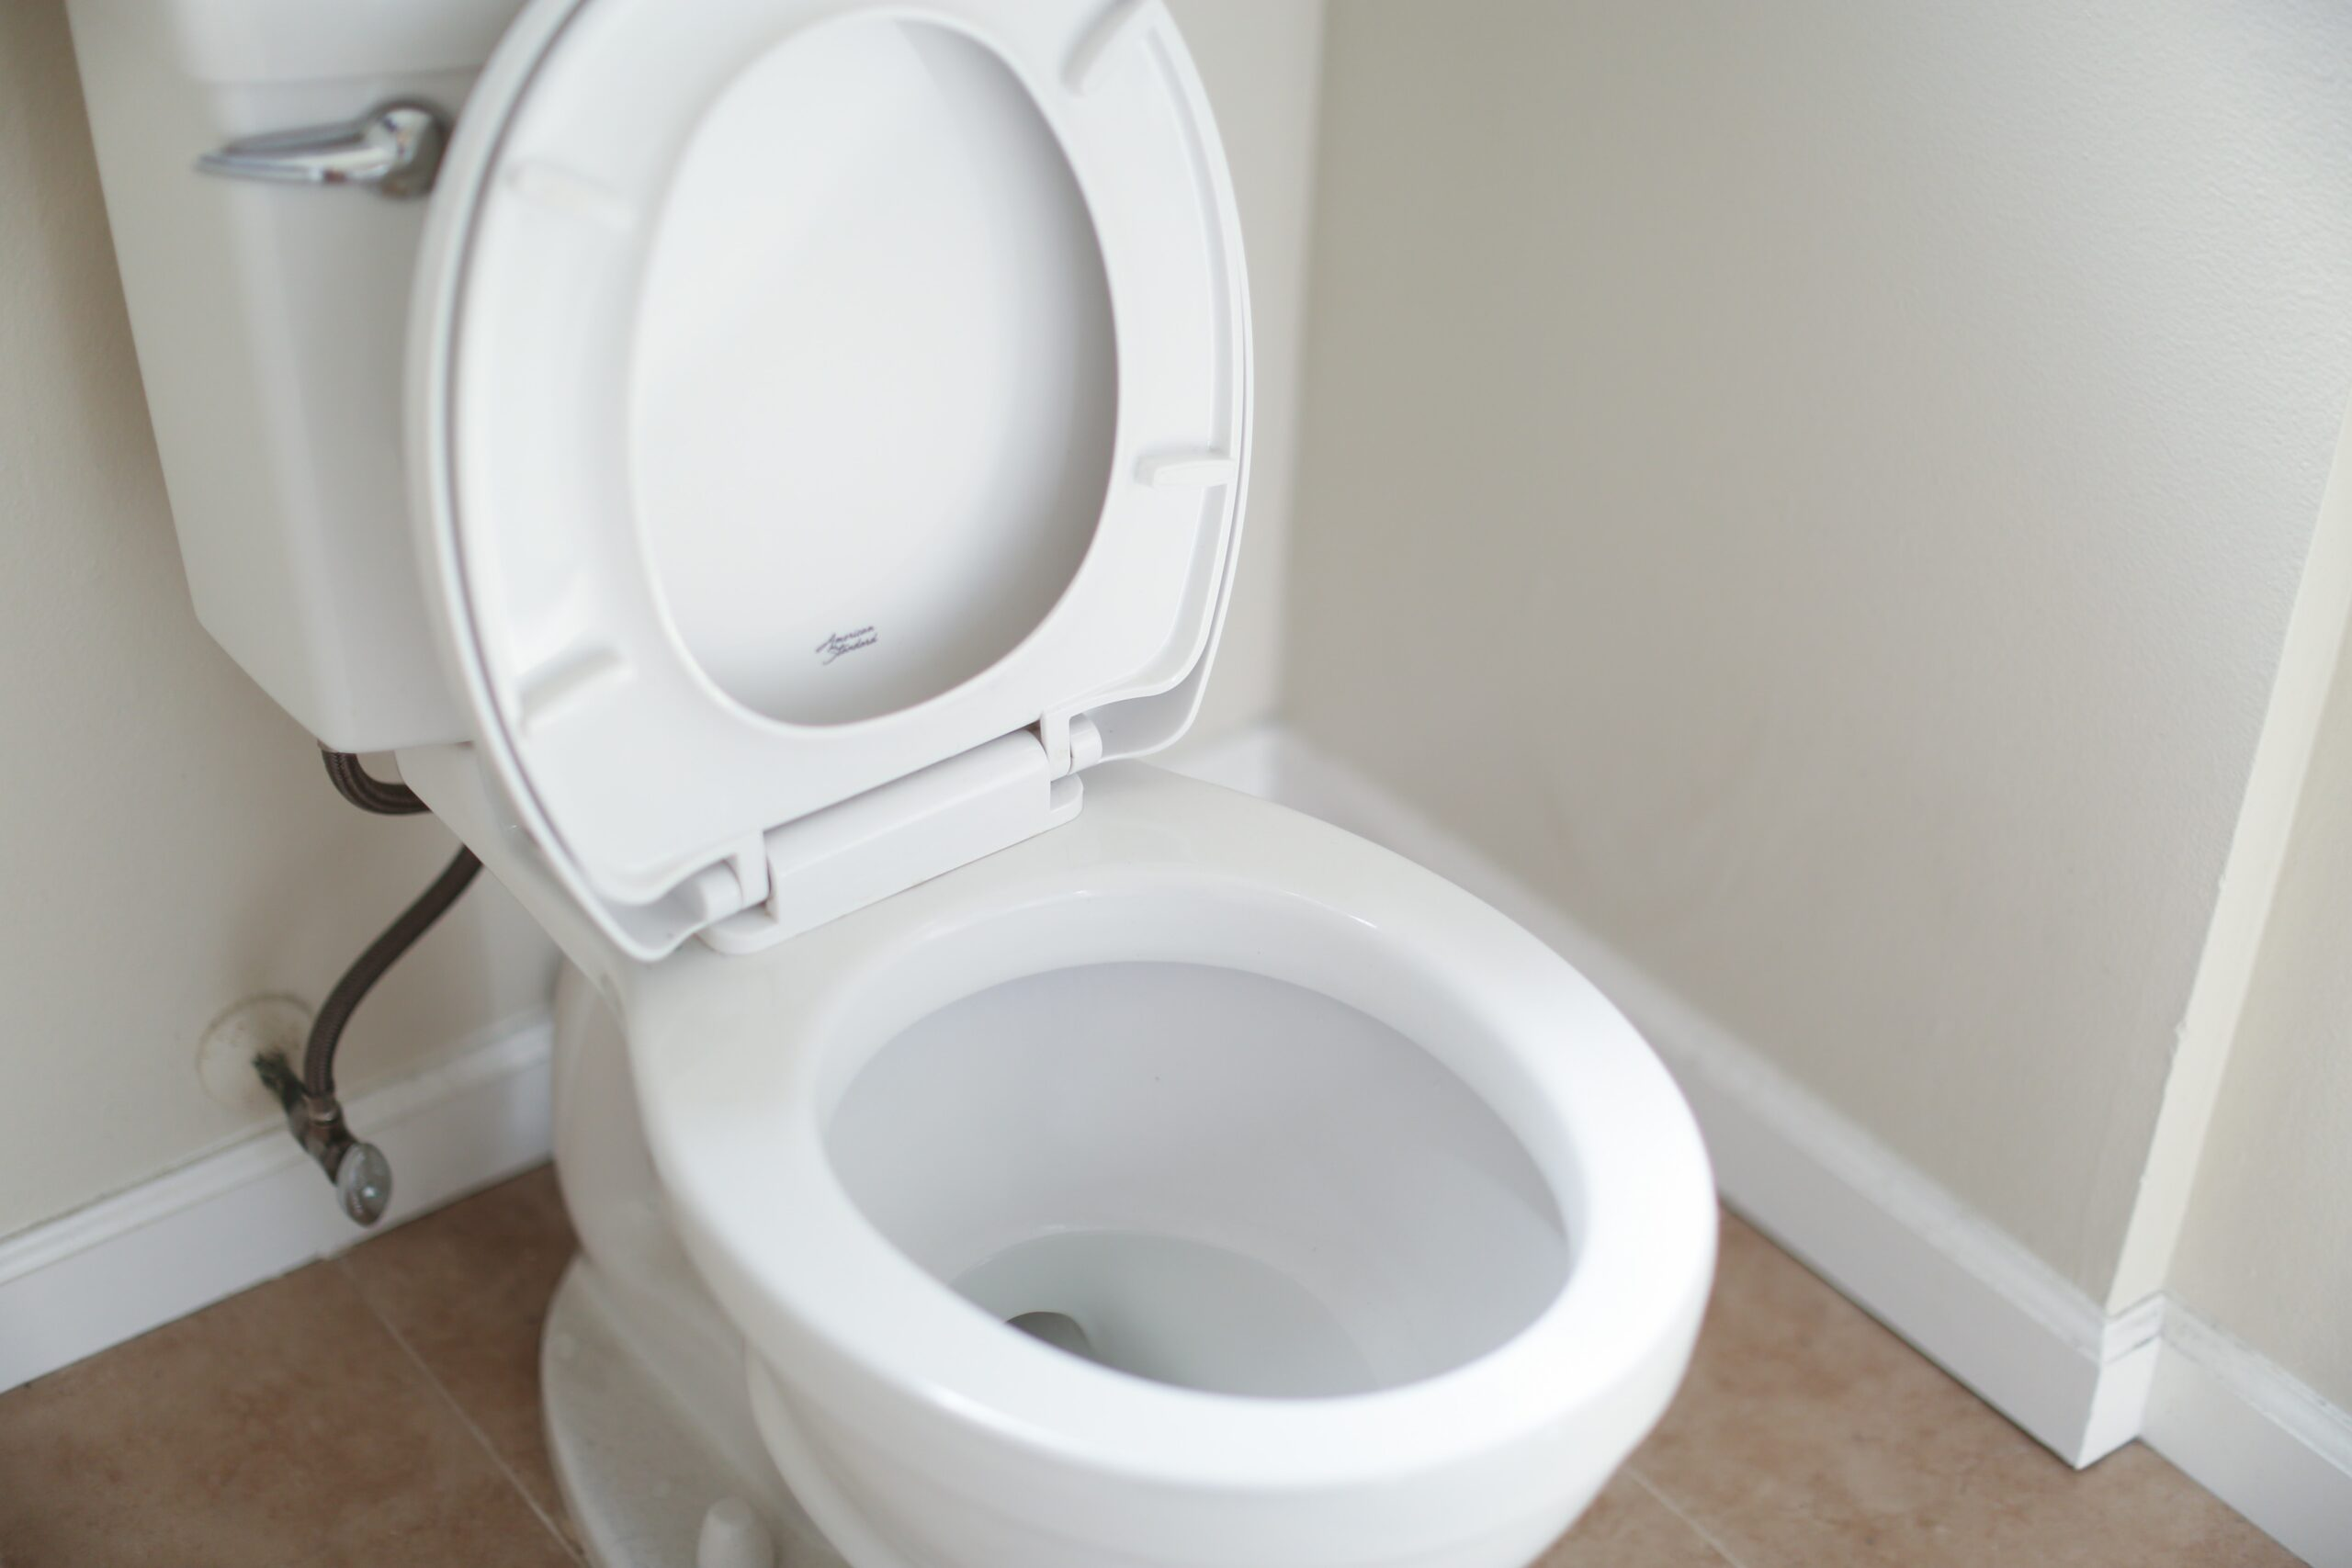 What Does it Mean to Reset a Toilet? [Wax Ring, Flange & More]